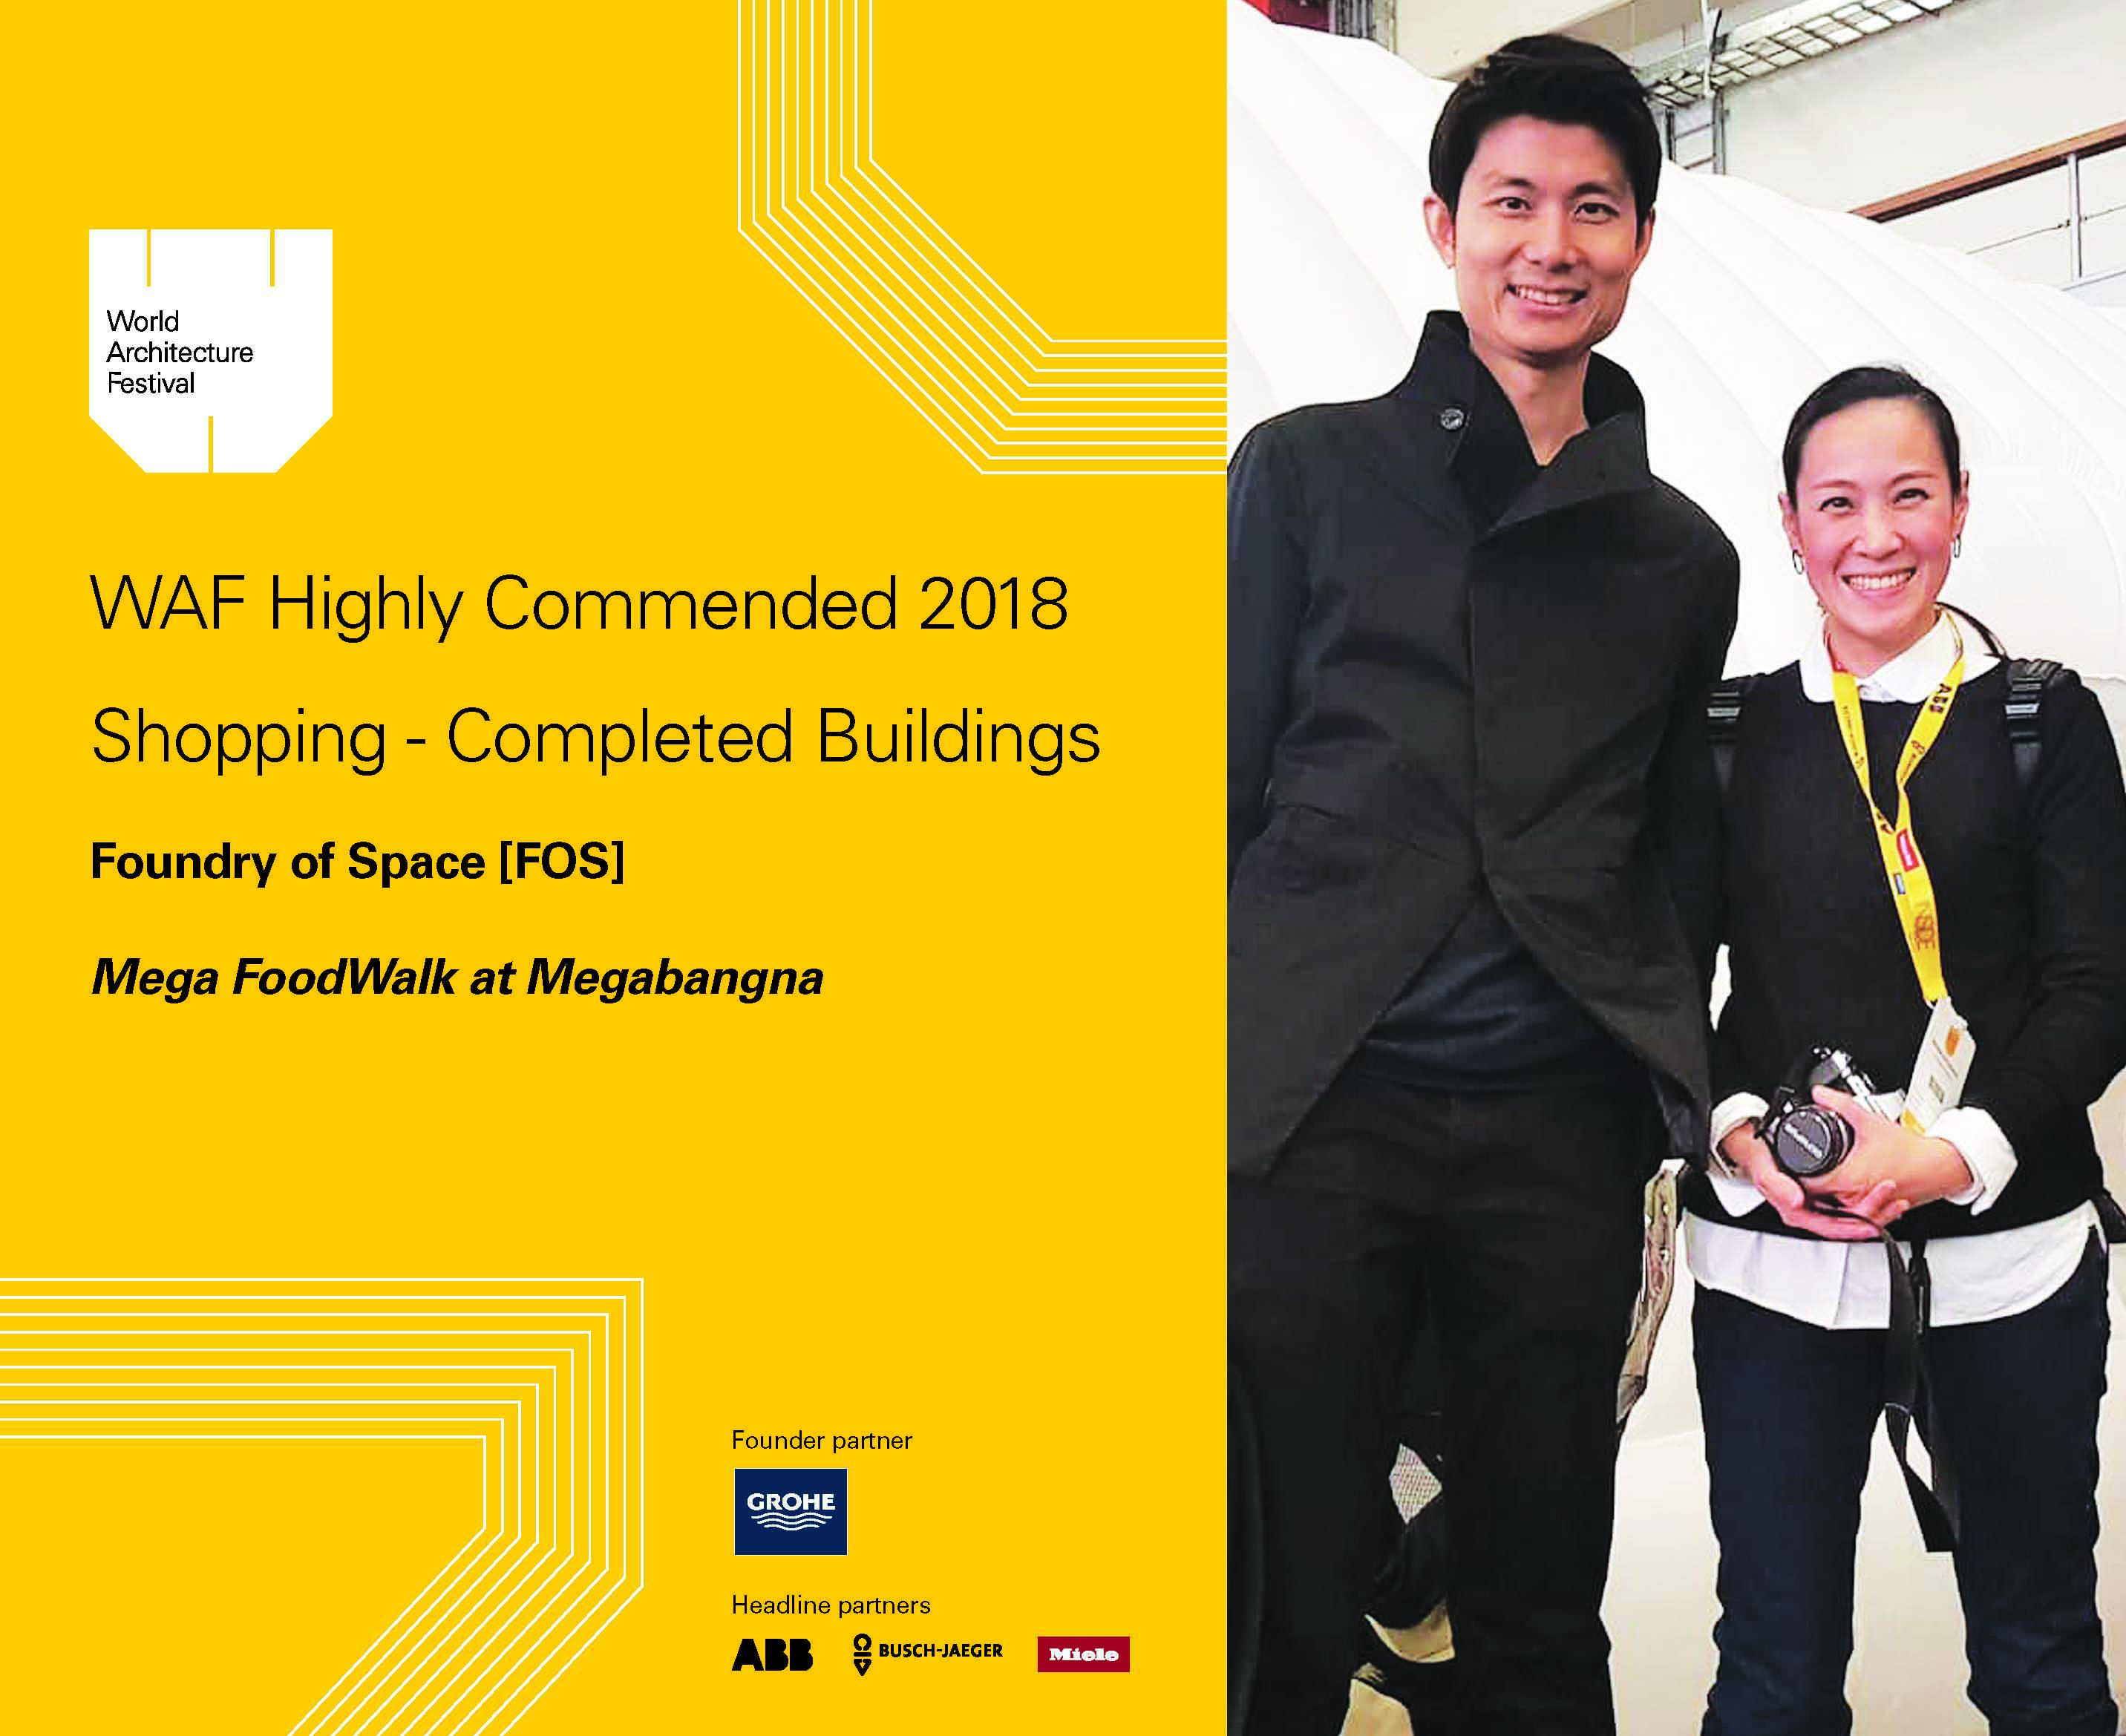 MEGA FOODWALK WINS 'highly commended' in WAF2018